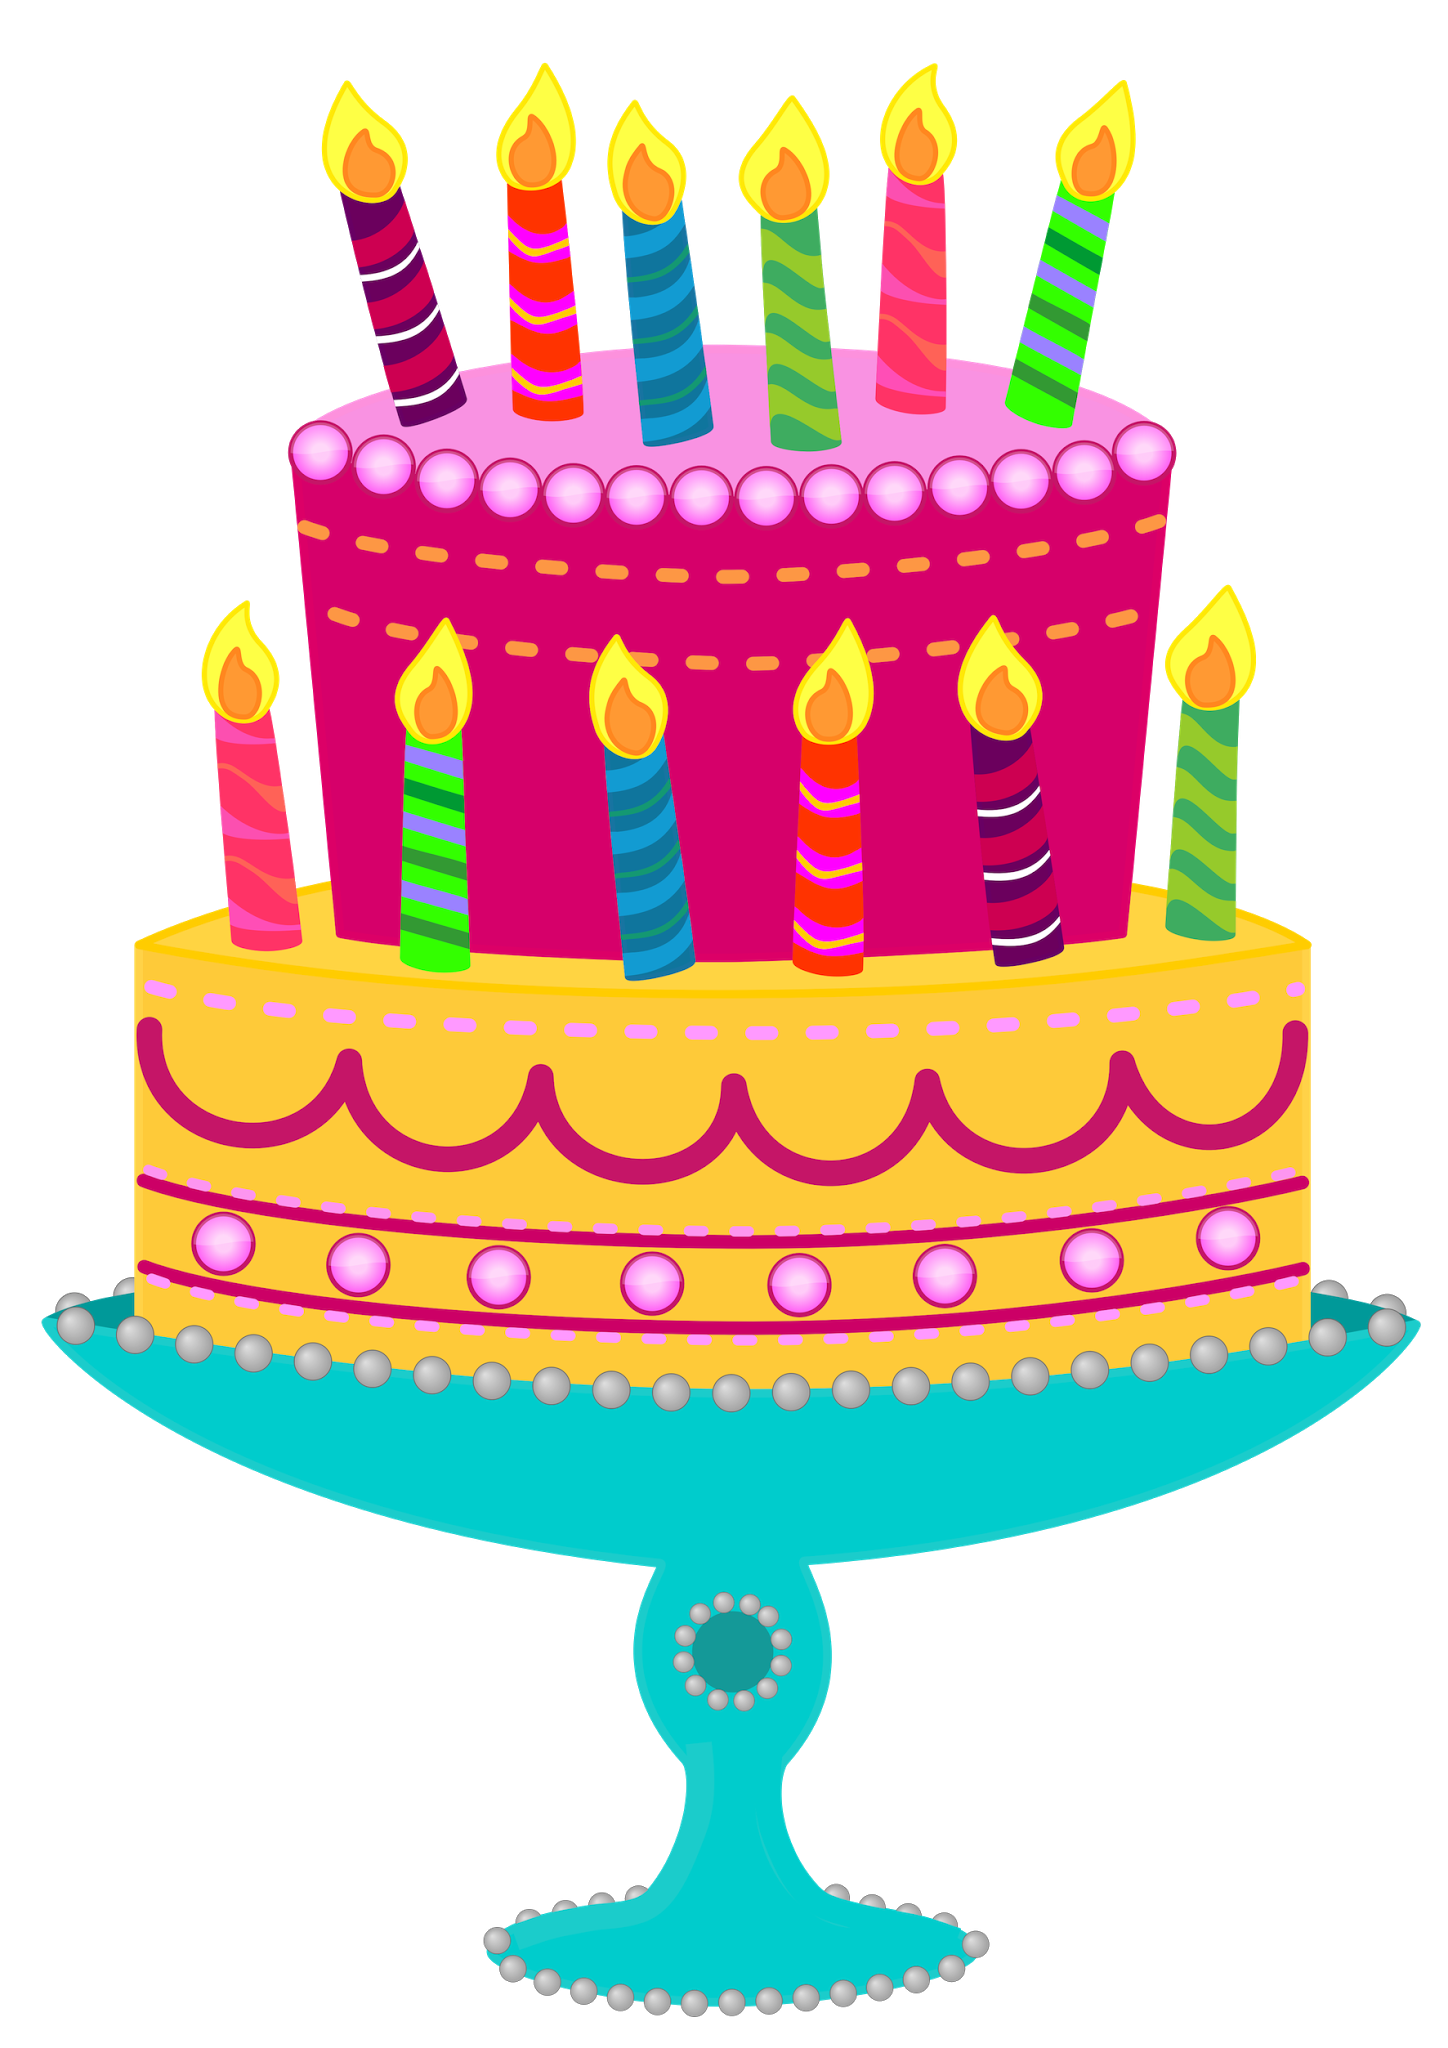 Free Cake Images Birthday Cake Clip Art Birthday Cake With Candles Birthday Cake Illustration